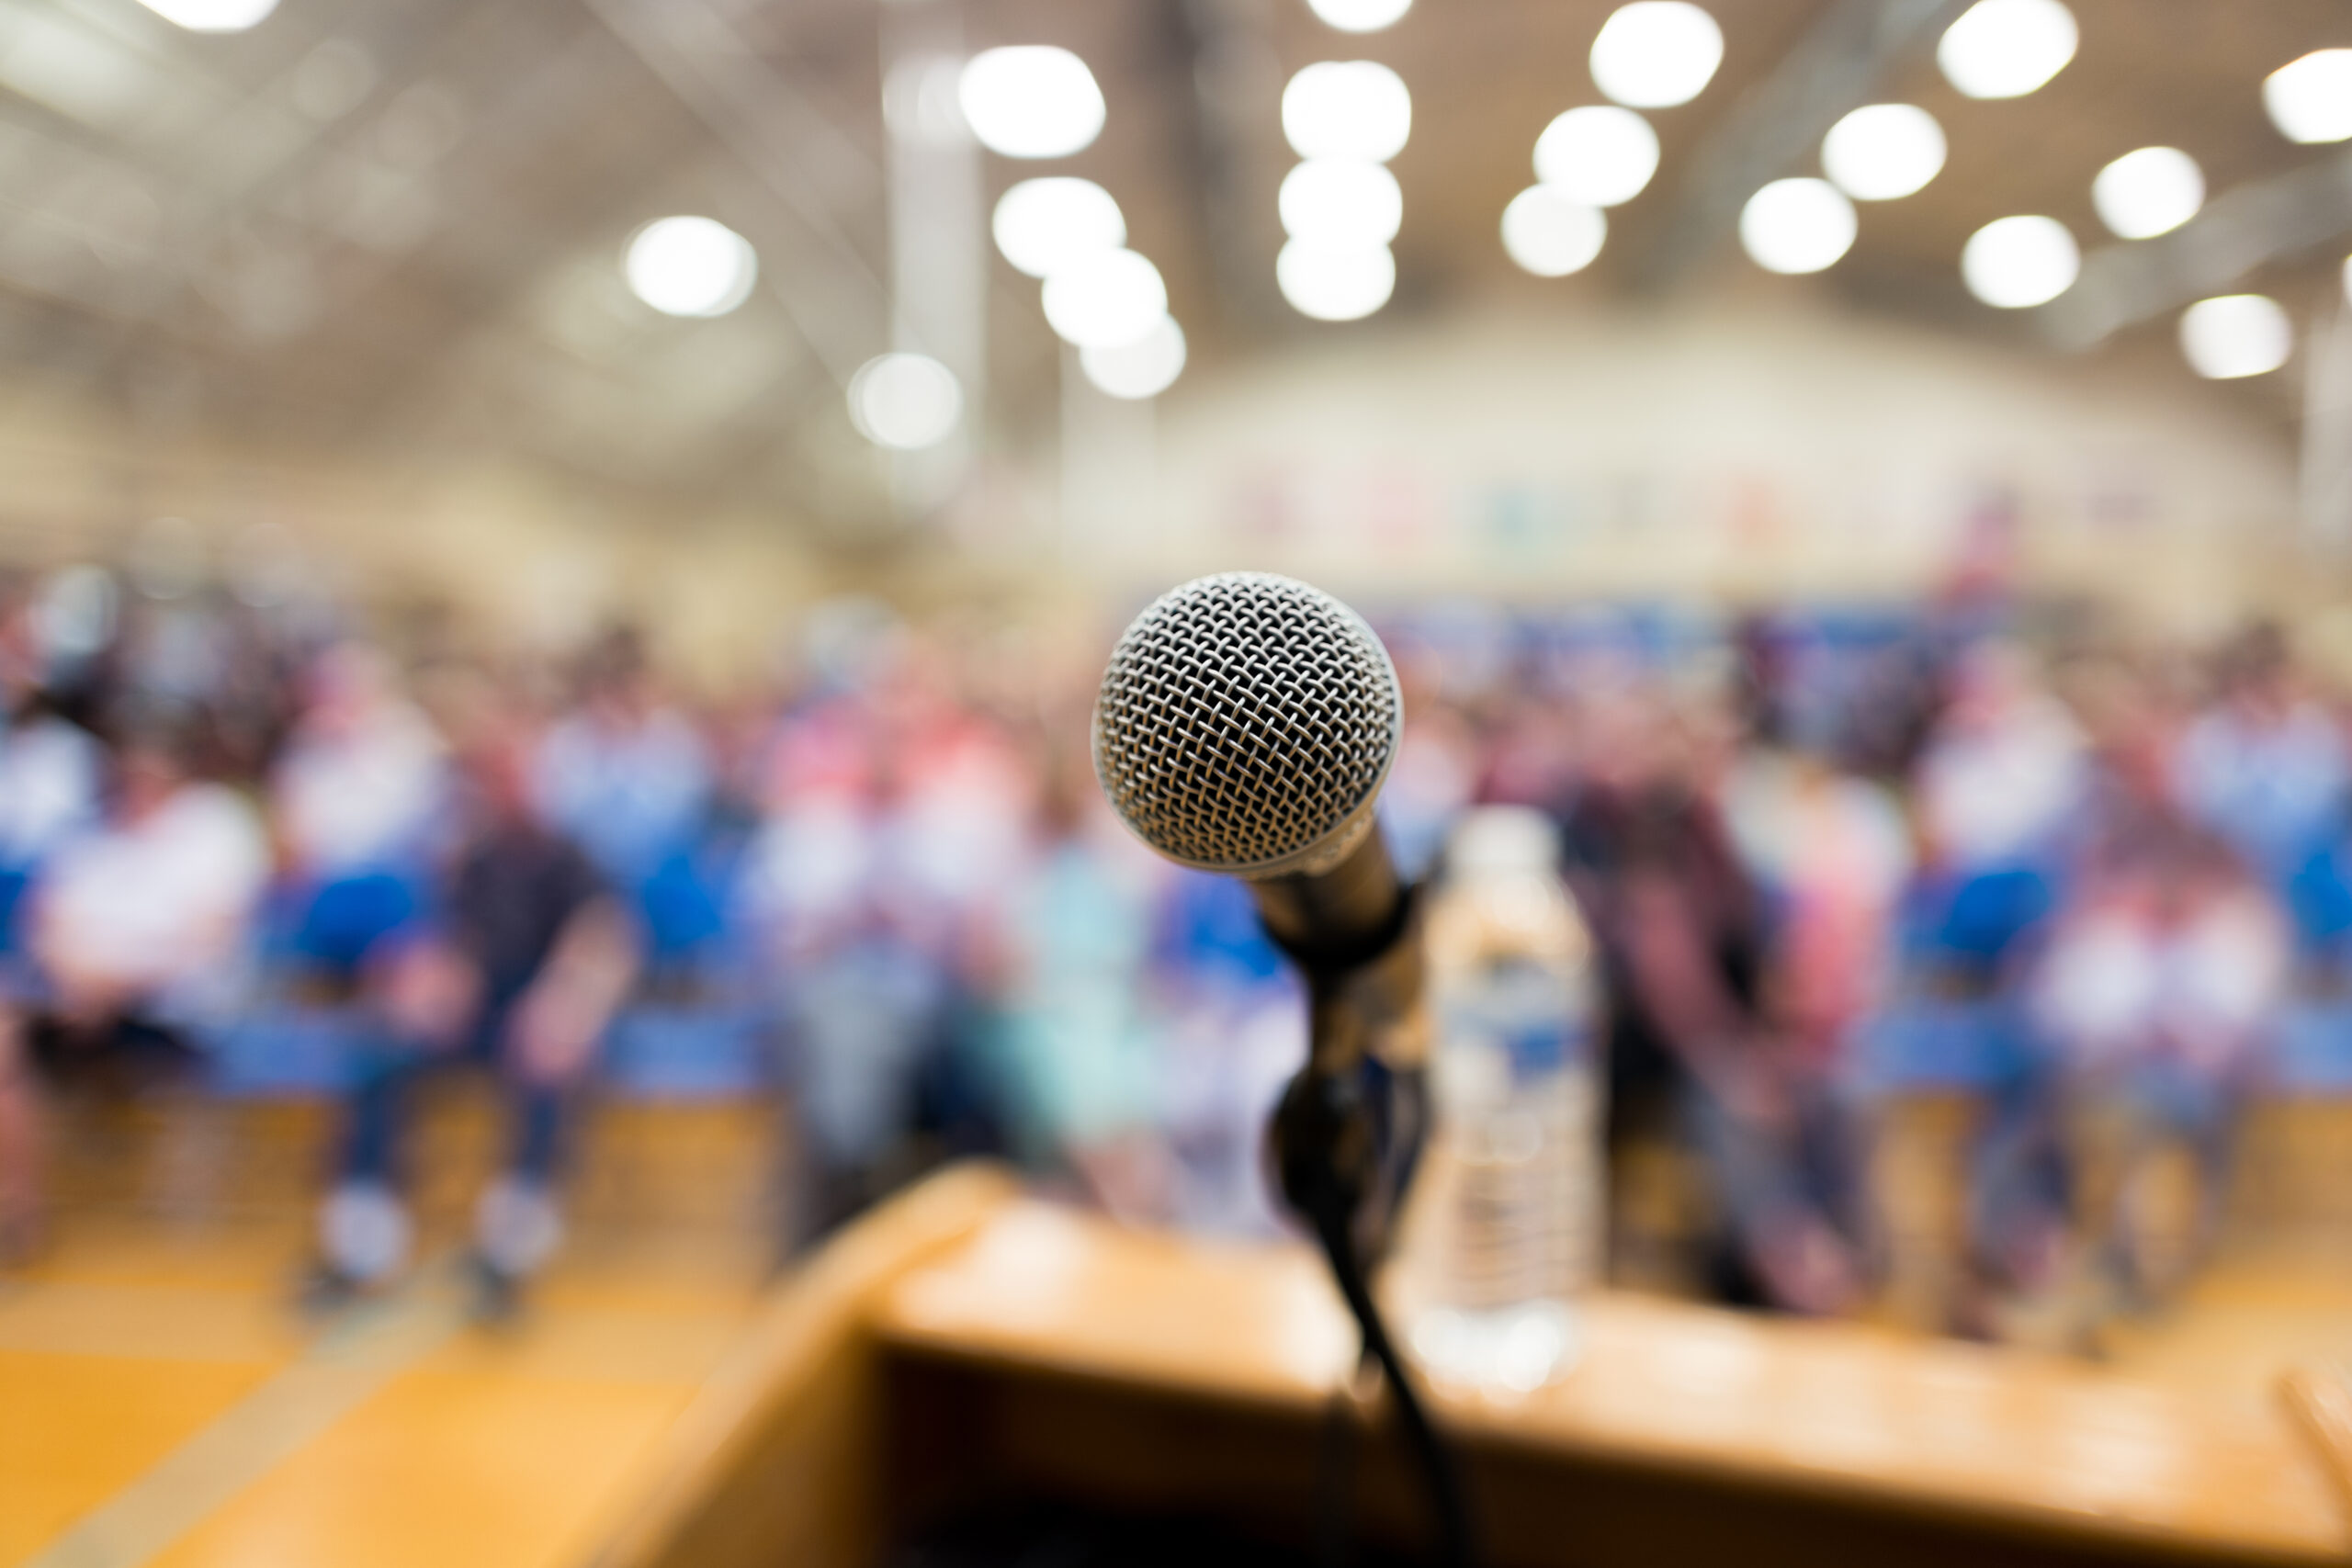 a microphone at a podium, the background a blurred audience